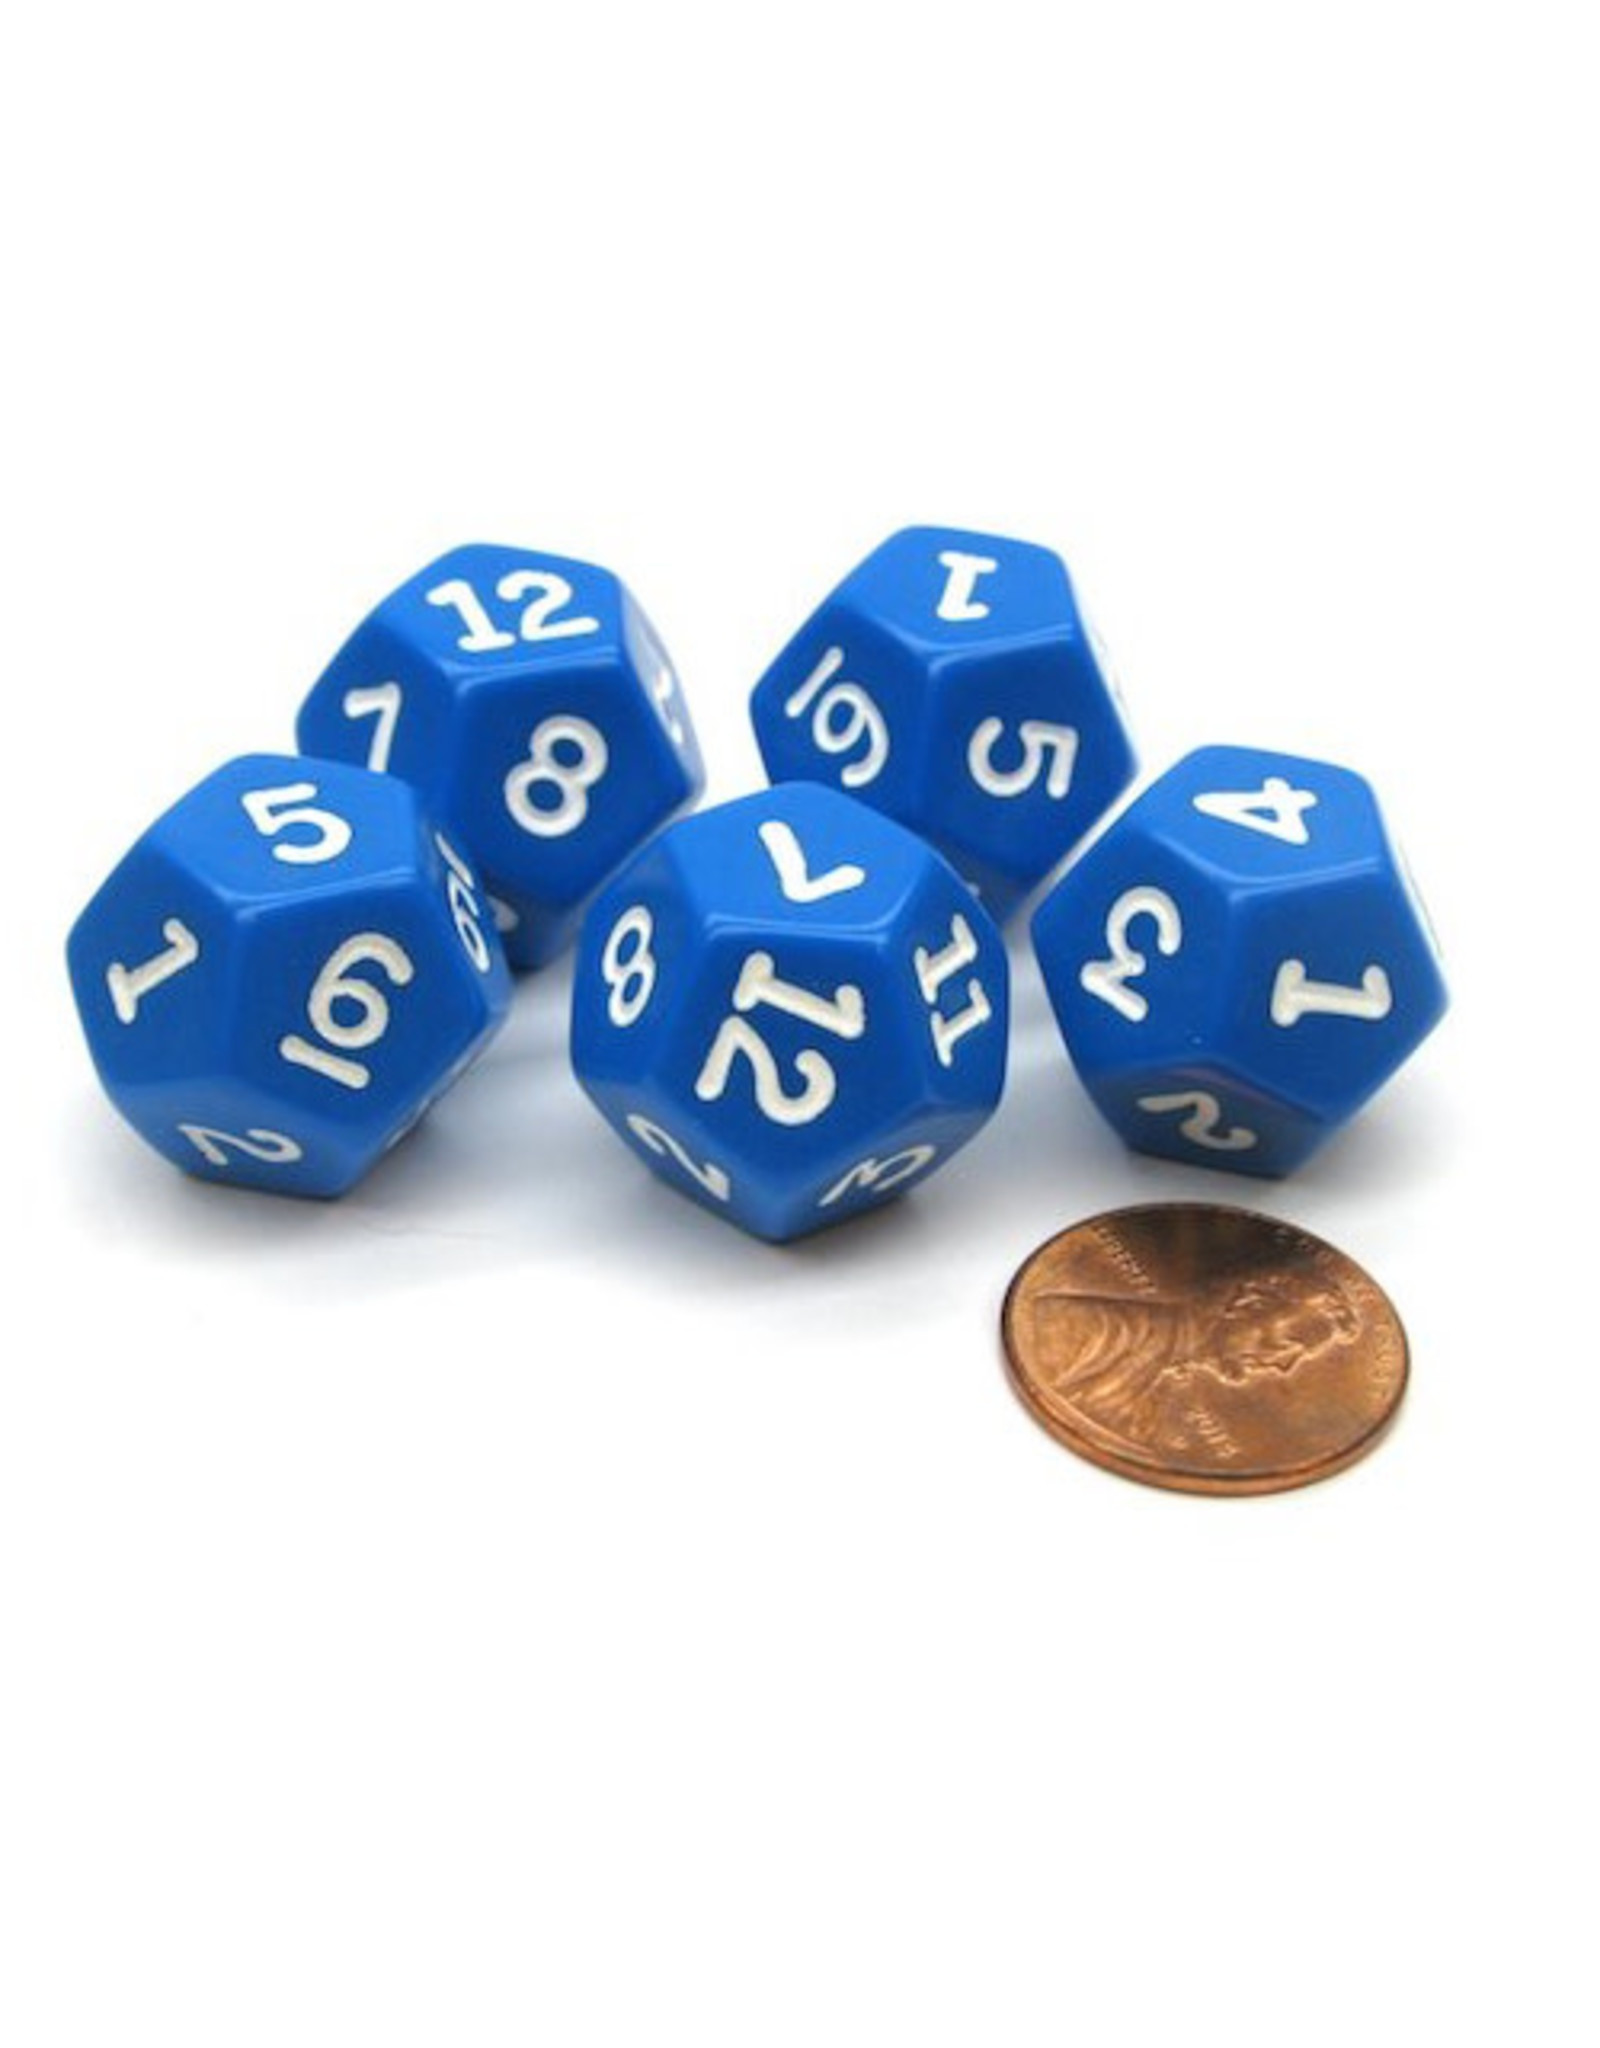 12 Sided Opaque Dice